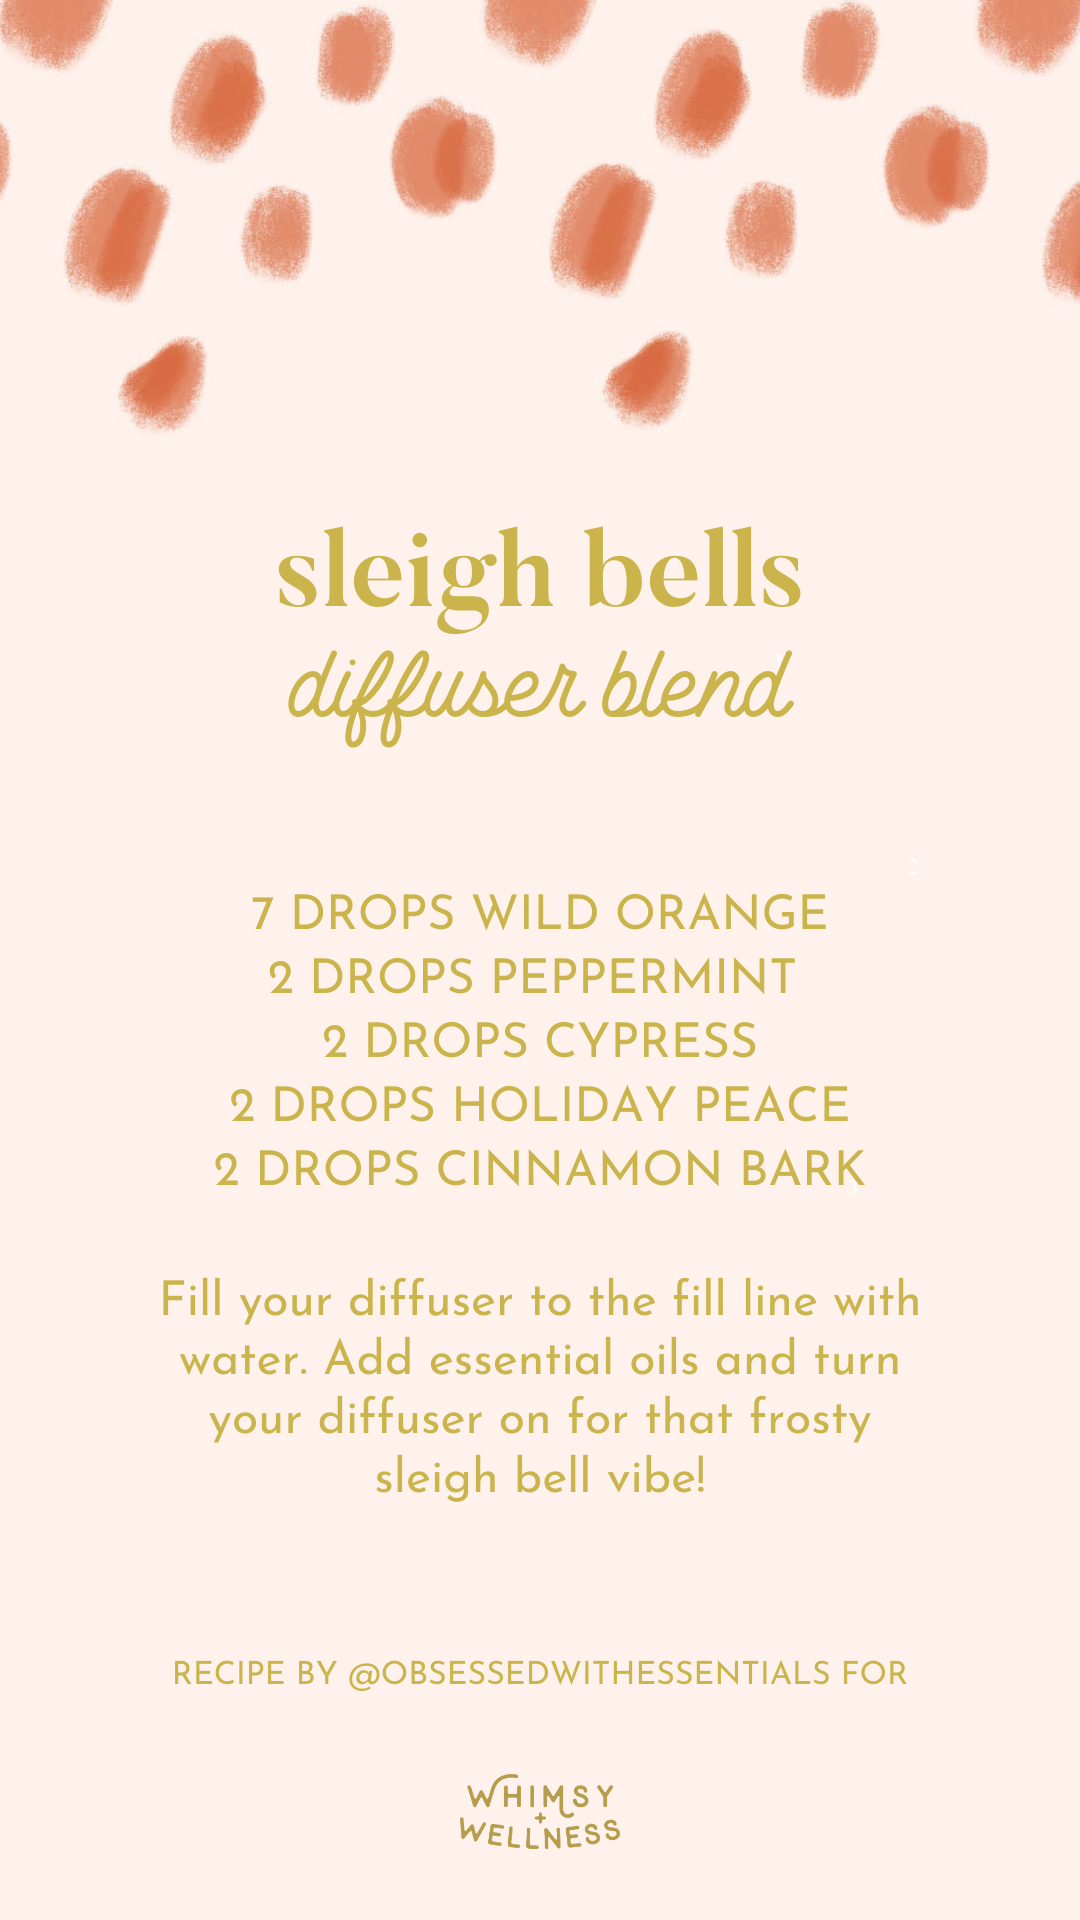 Melody Brandon shares a sleigh bells diffuser blend using doTERRA essential oils with Whimsy + Wellness products.